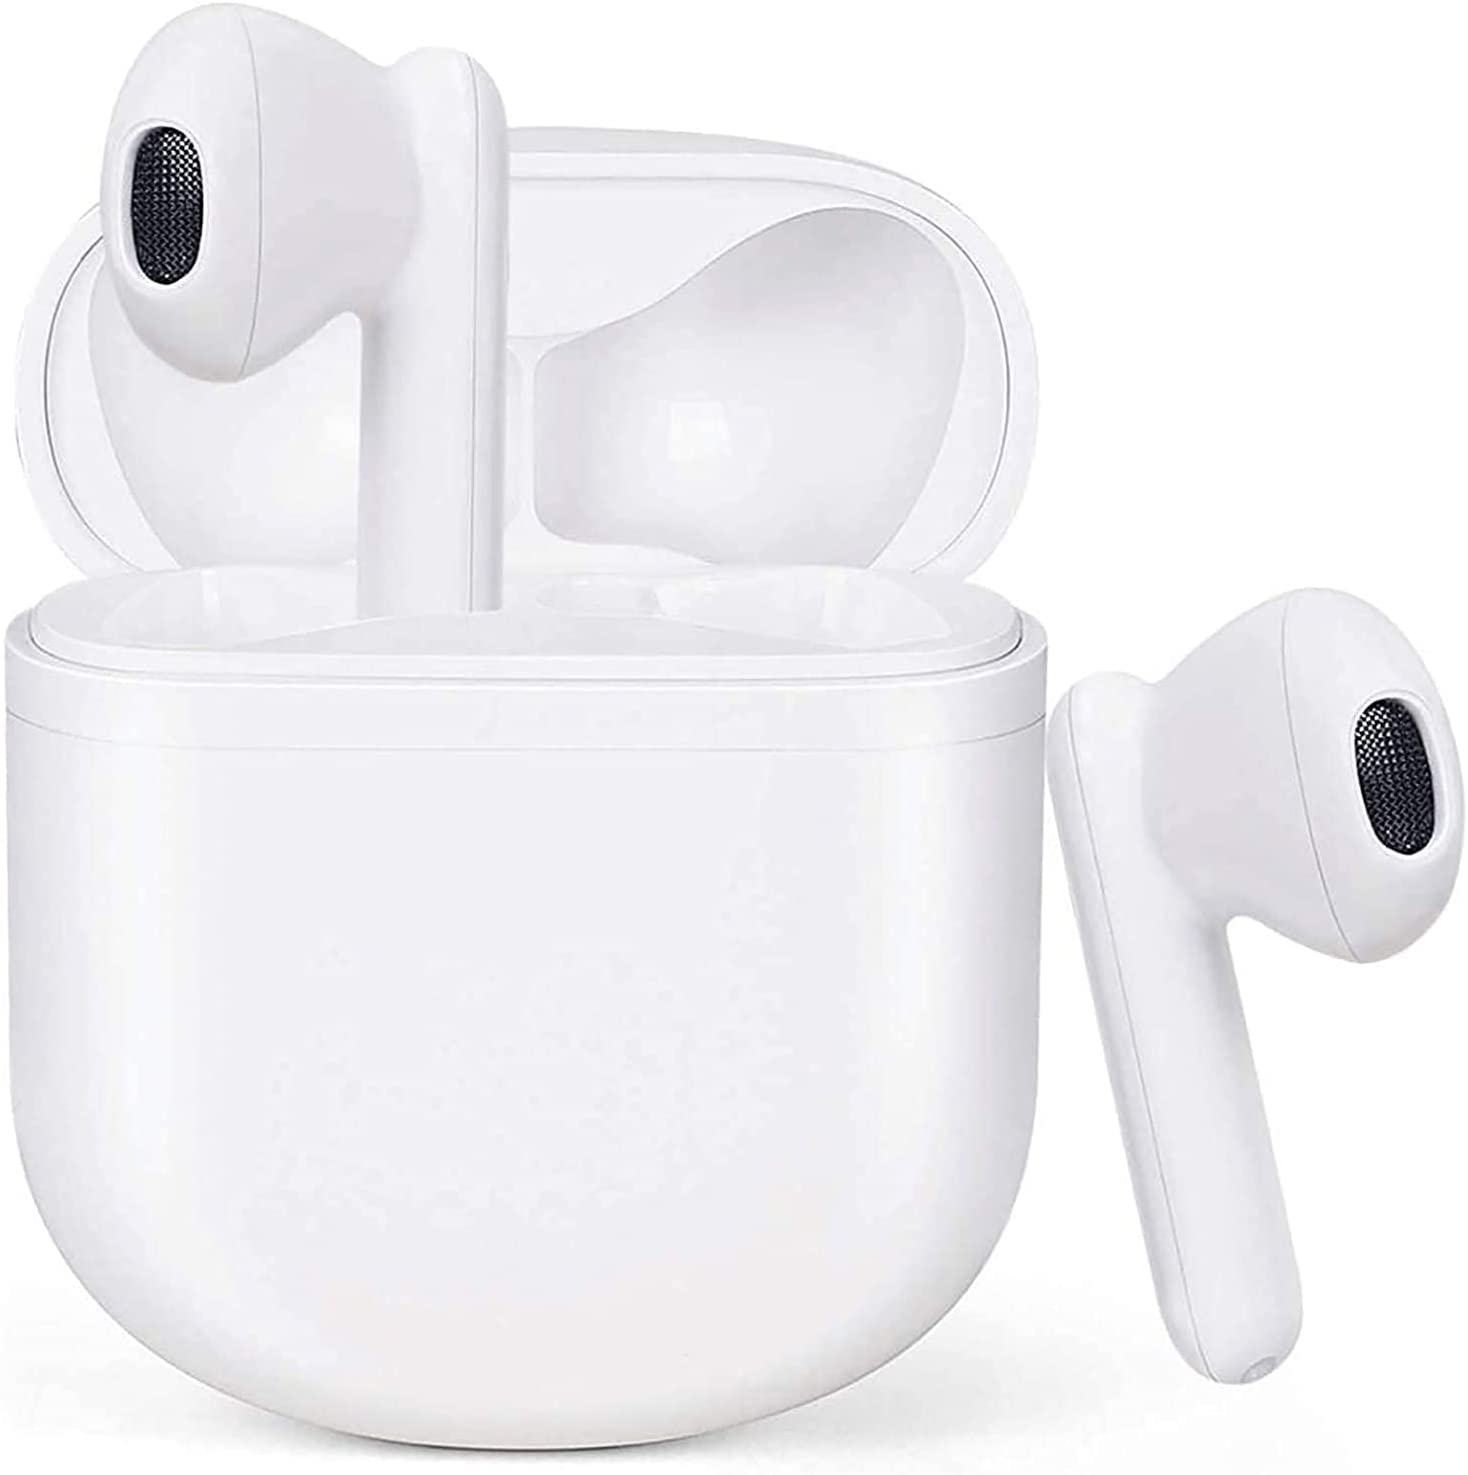 Wireless Earbuds Bluetooth 5.2 Headphones with Charging Case 3D Stereo Earpods Air Buds in-Ear Ear Buds with Deep Bass Touch Control Earphones Sport Headsets for Android/Samsung/iPhone Earbuds